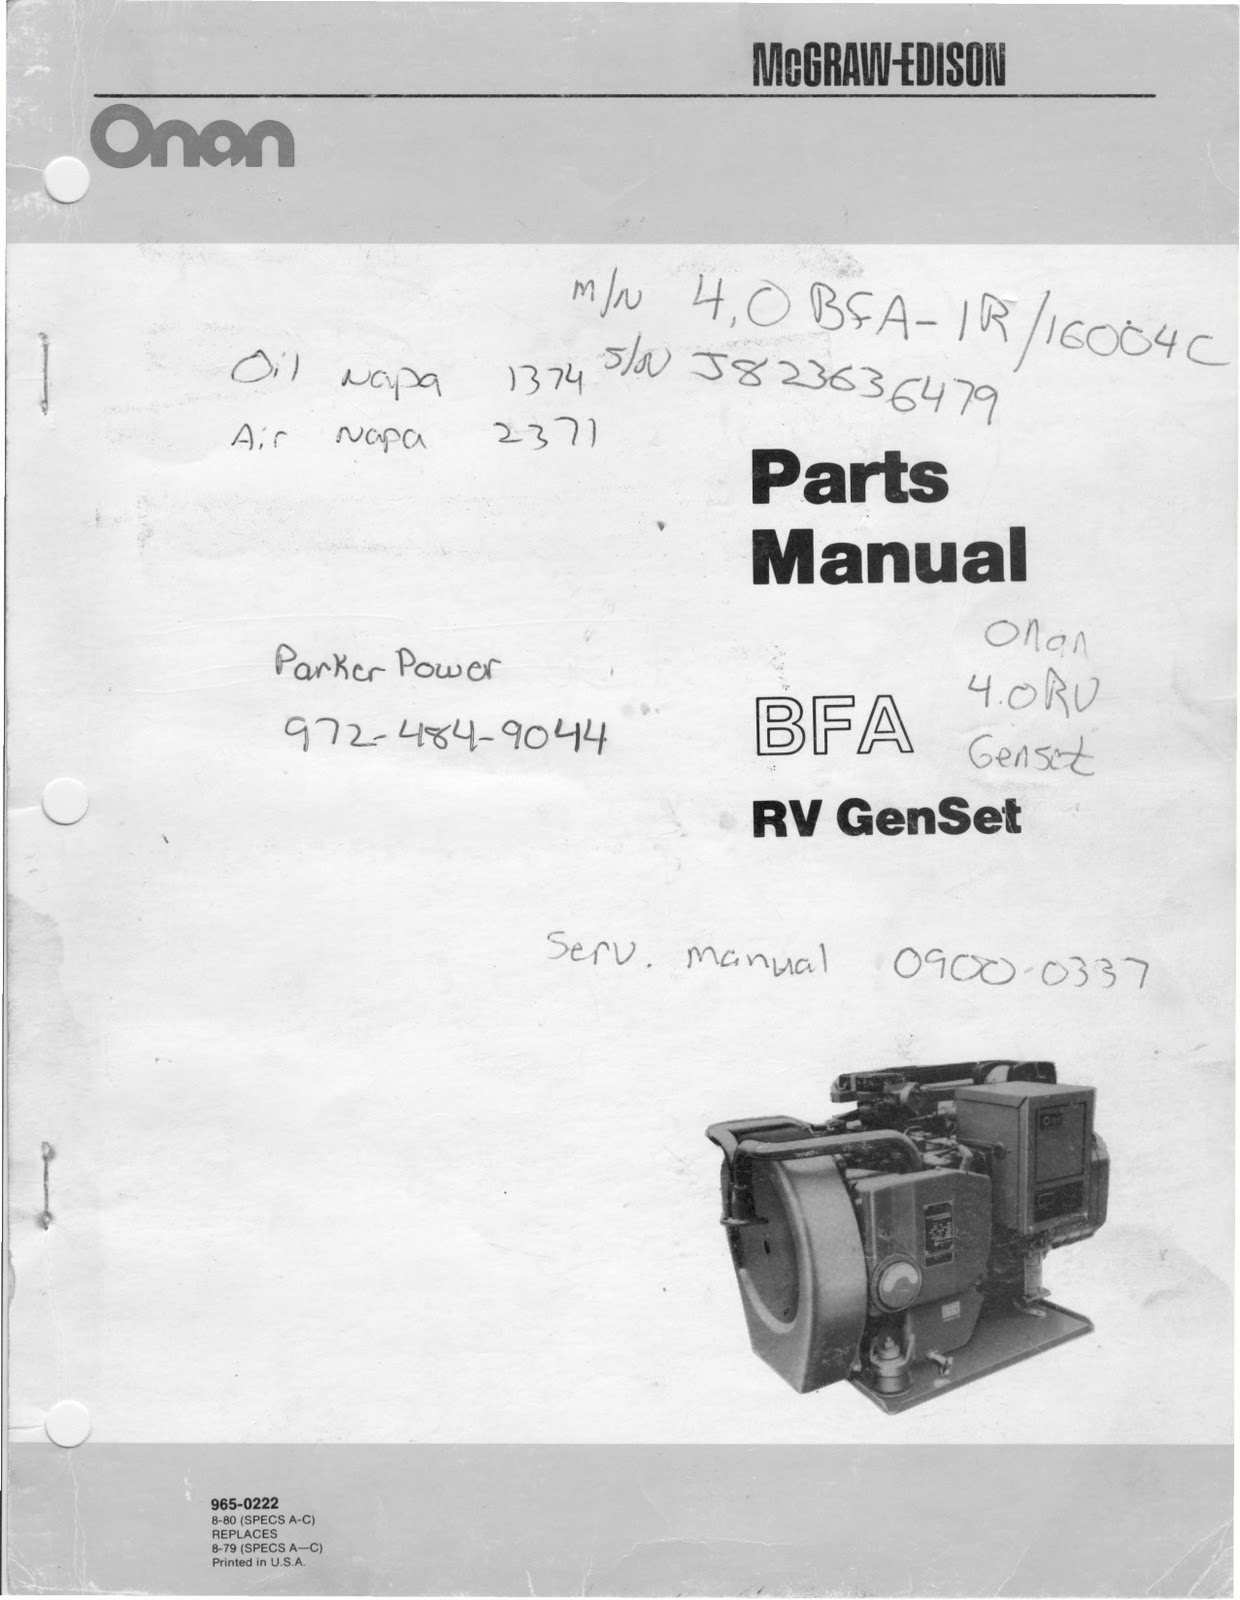 1983 fleetwood pace arrow owners manuals onan bfa rv genset parts rh 1983fleetwoodpacearrowownersmanuals blogspot com onan parts manual pdf parts manual onan generator